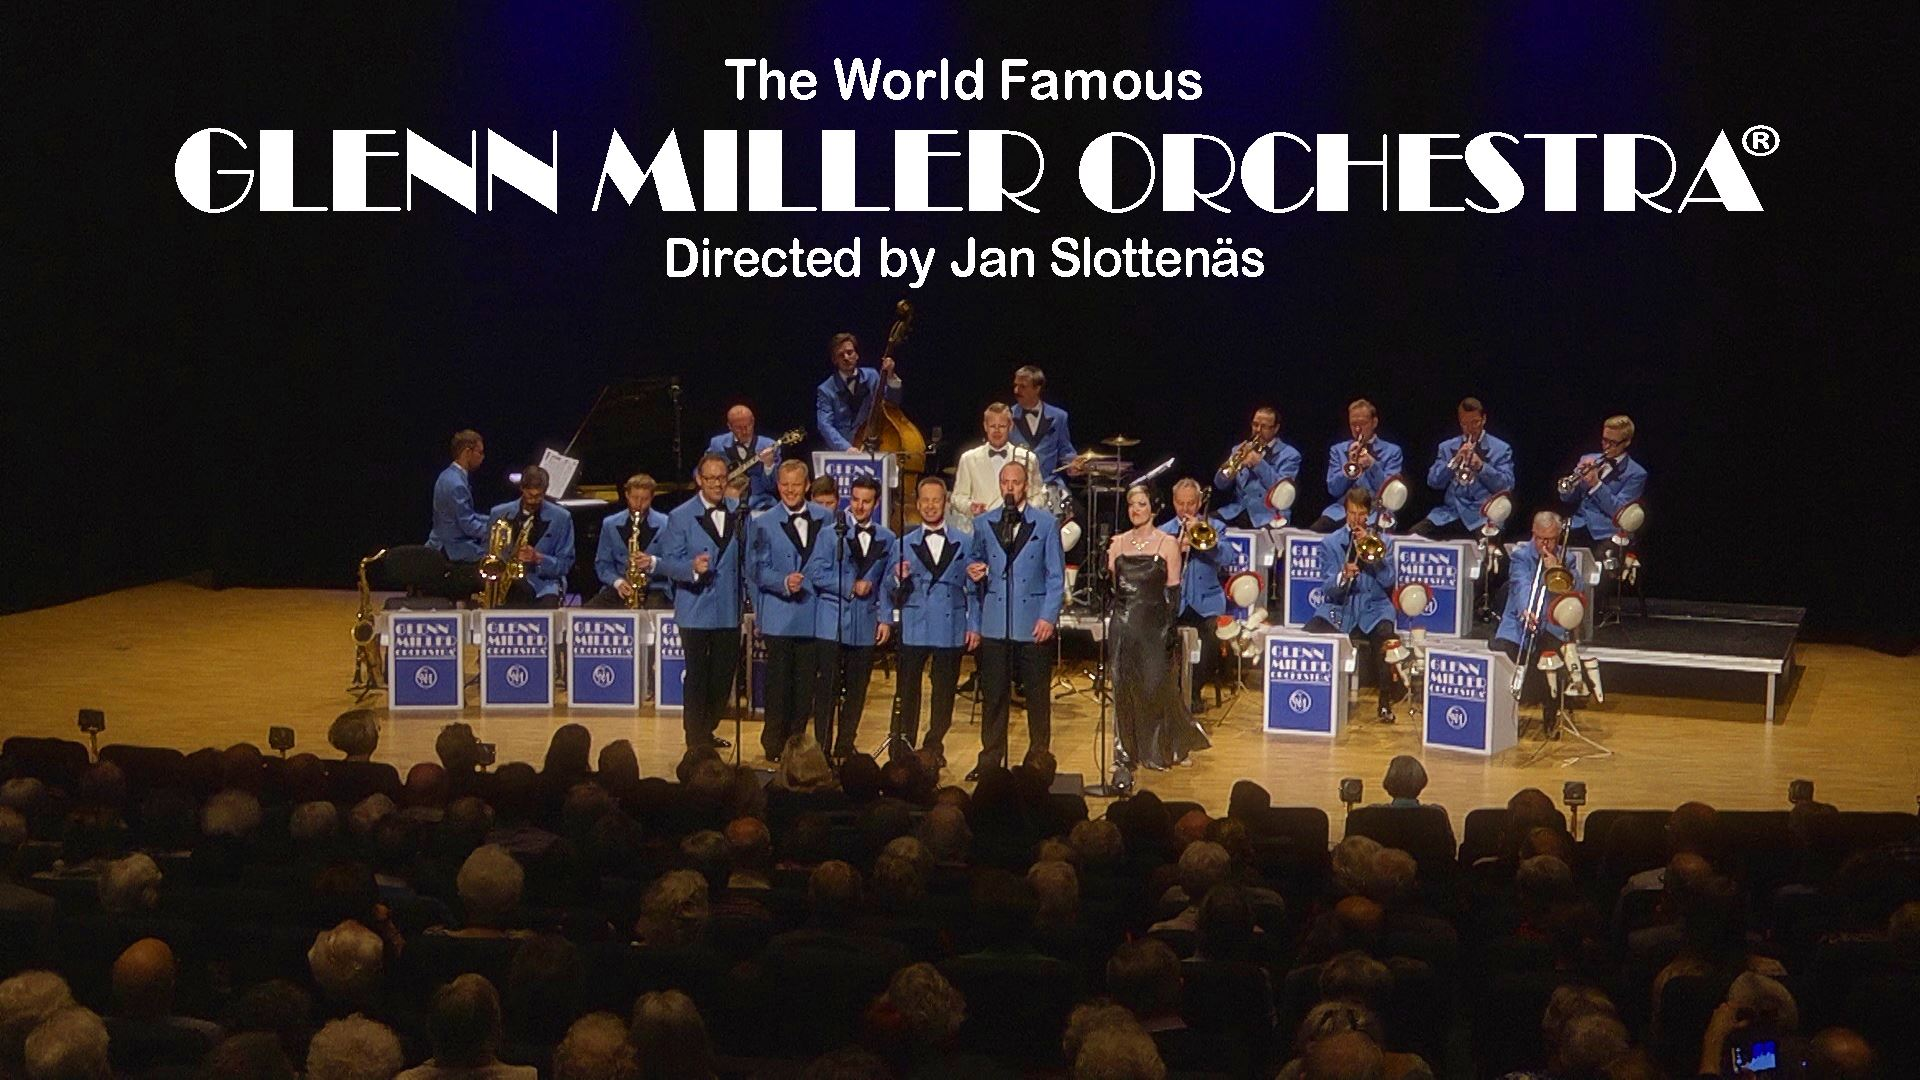 Glenn Miller Orchestra - A Tribute to the Great Bands